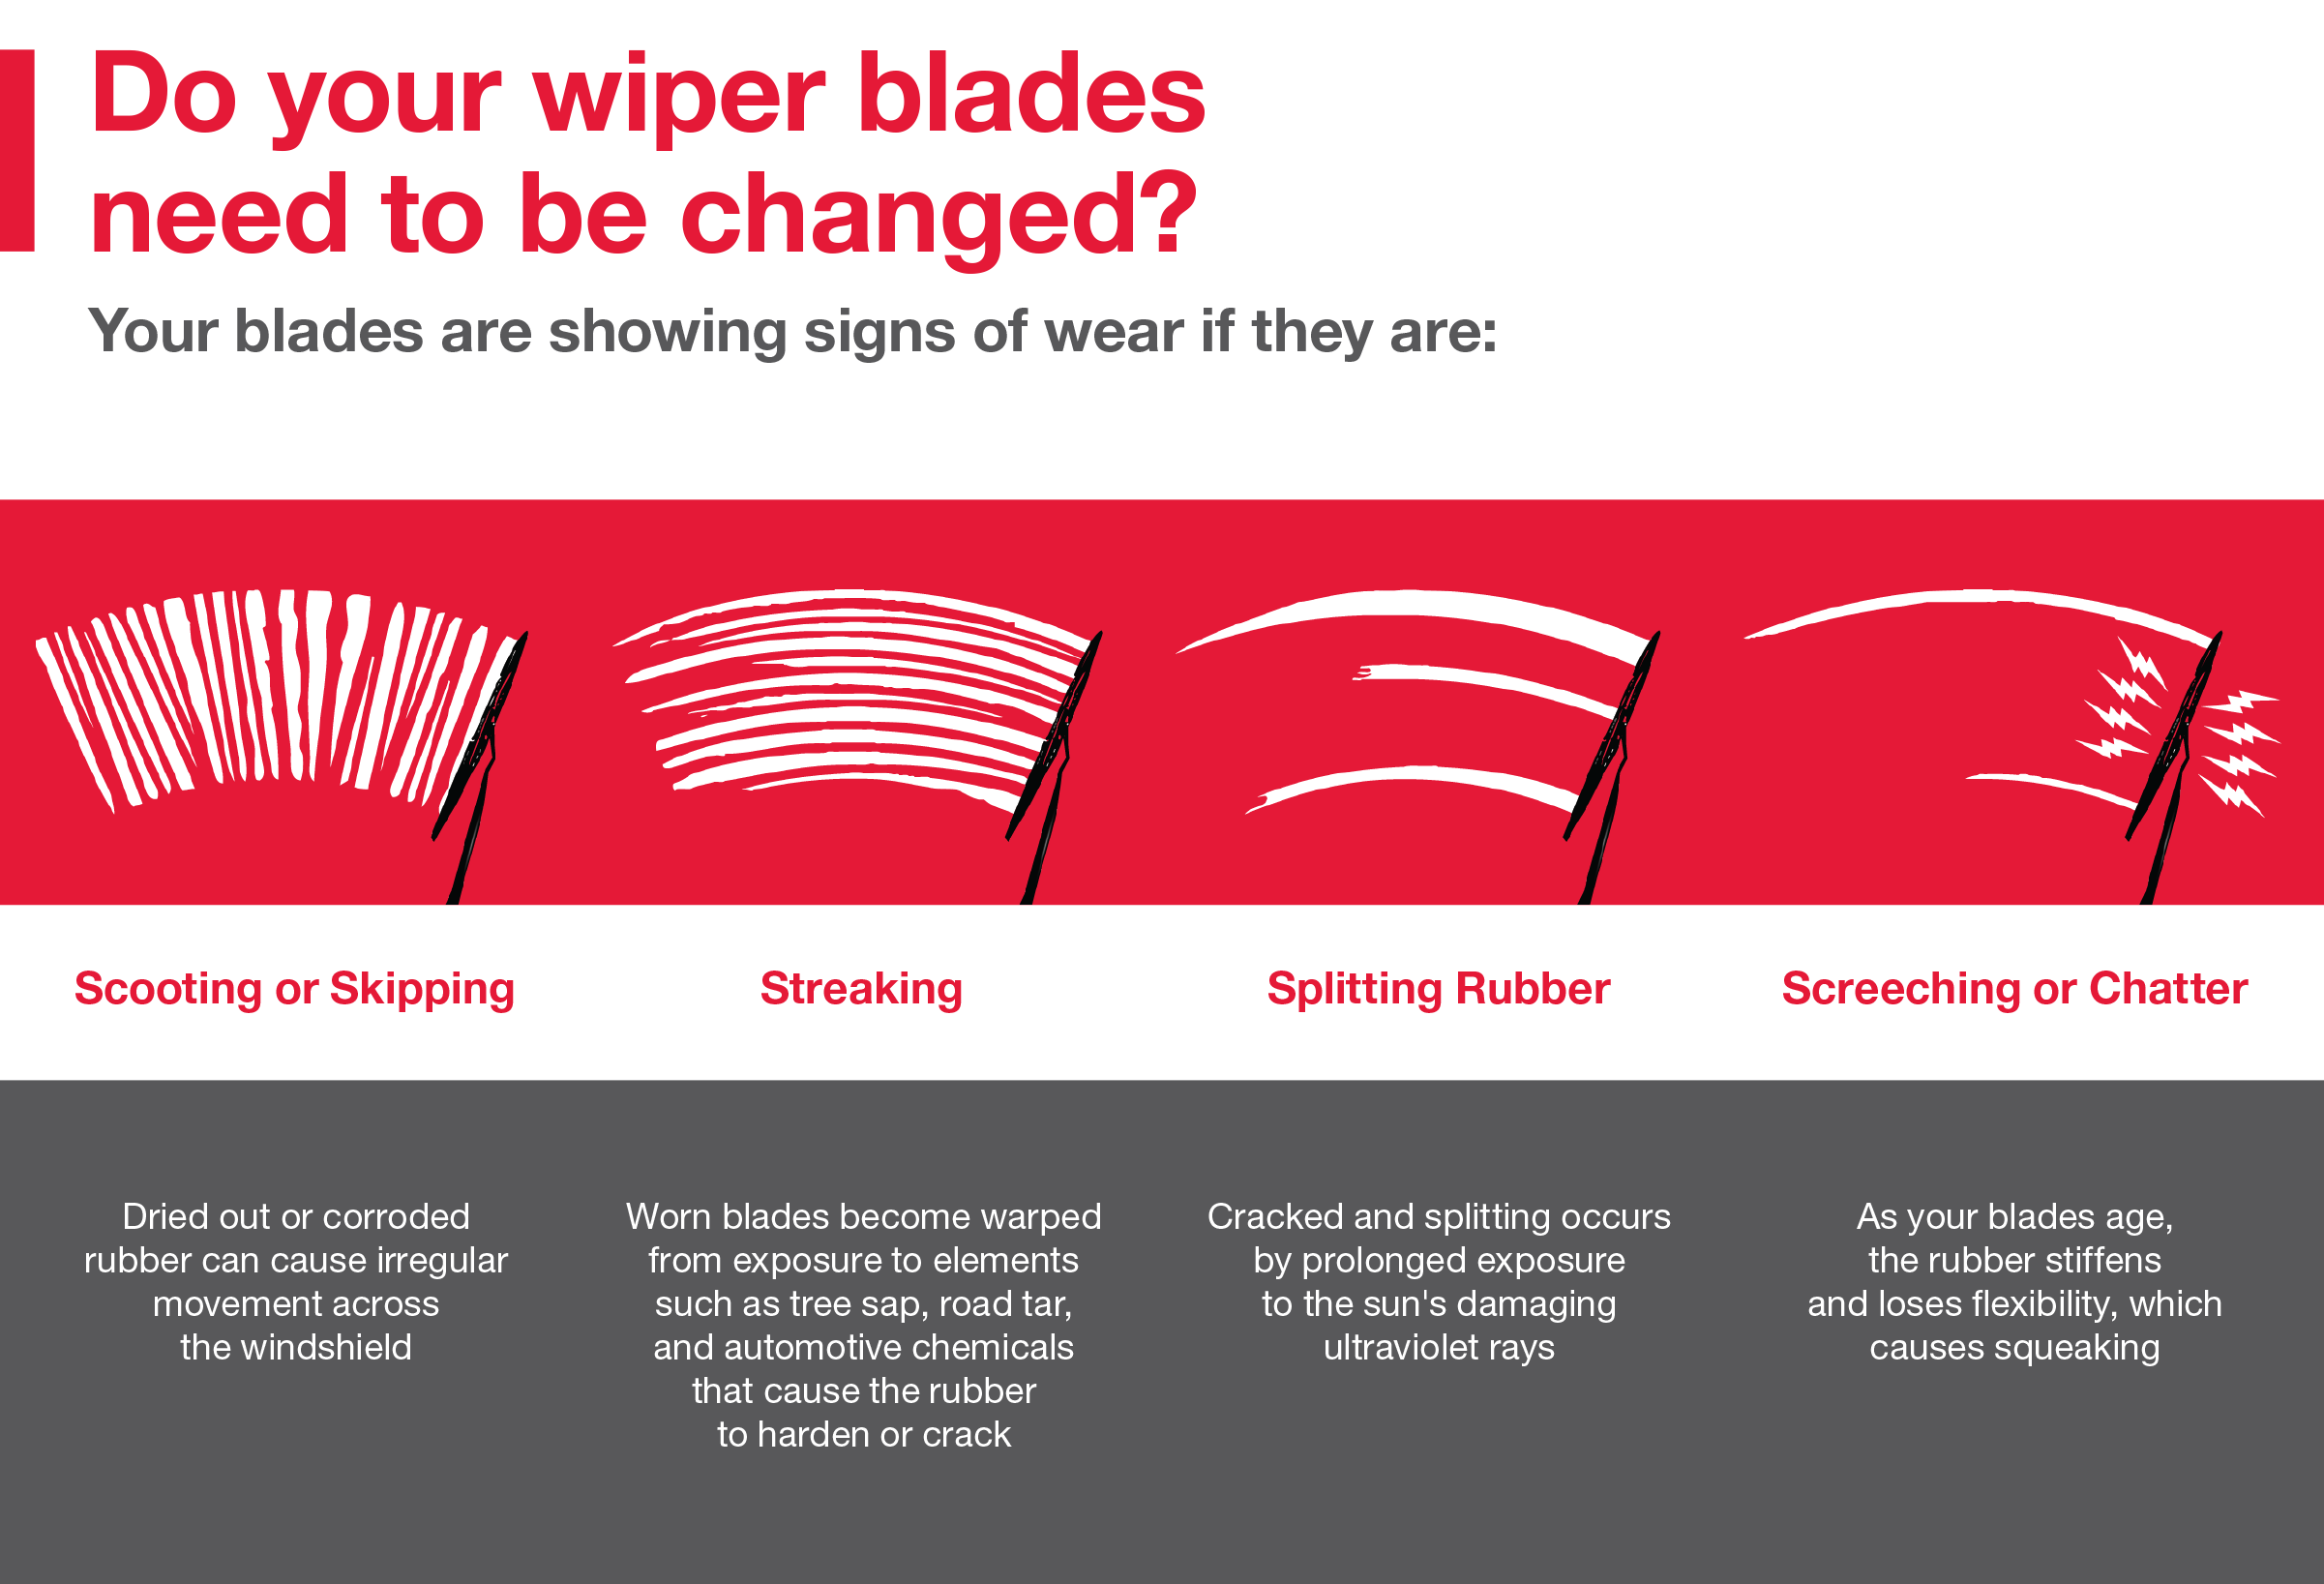 Do your wiper blades need to be changed? Call your local dealer for more info: (701) 289-9294